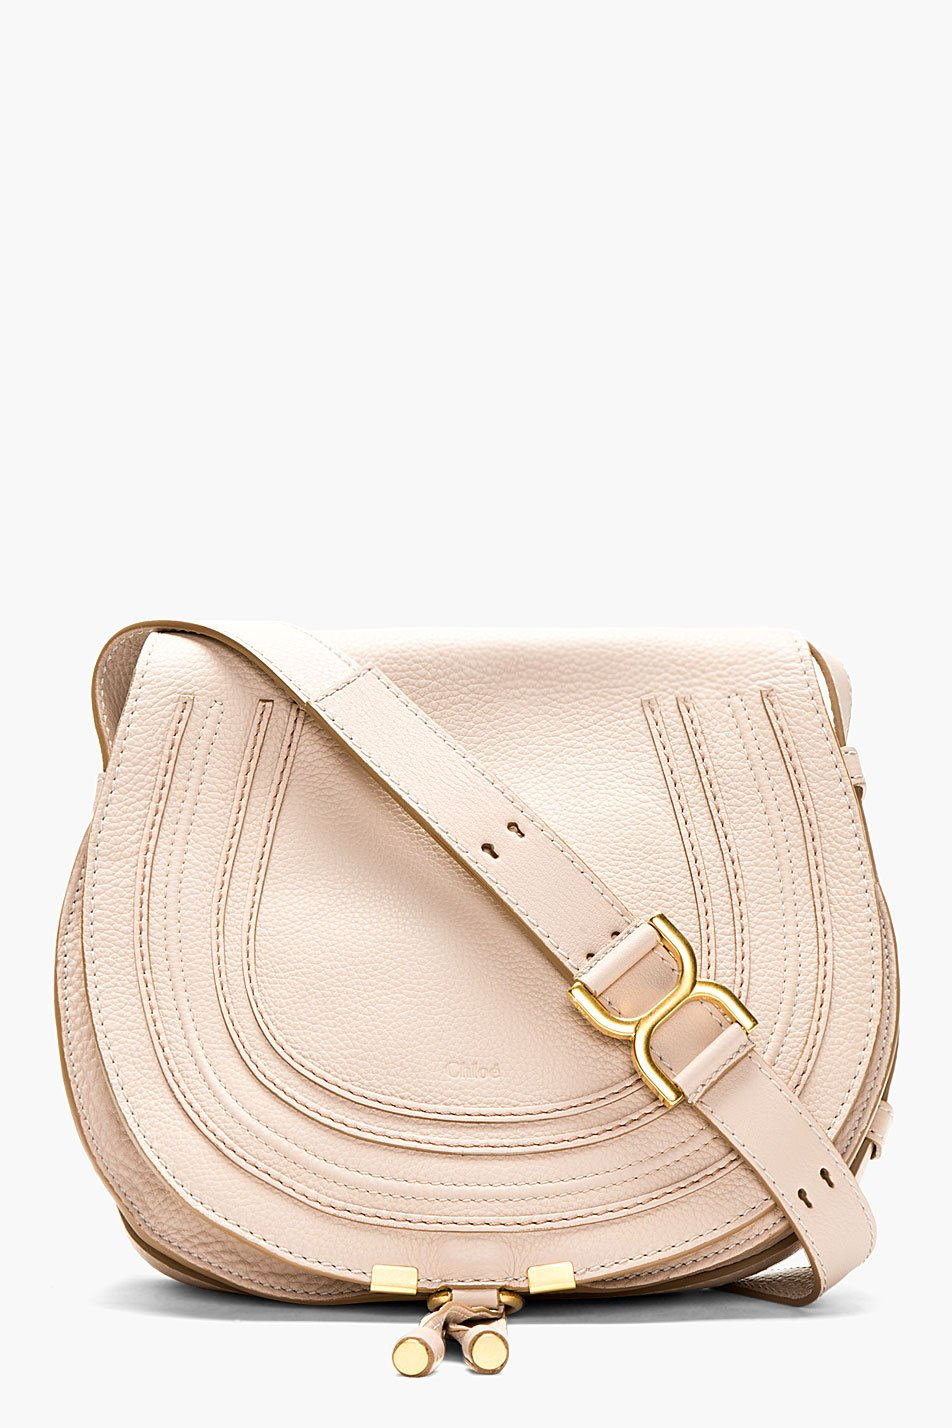 chlo taupe pebble leather marcie satchel